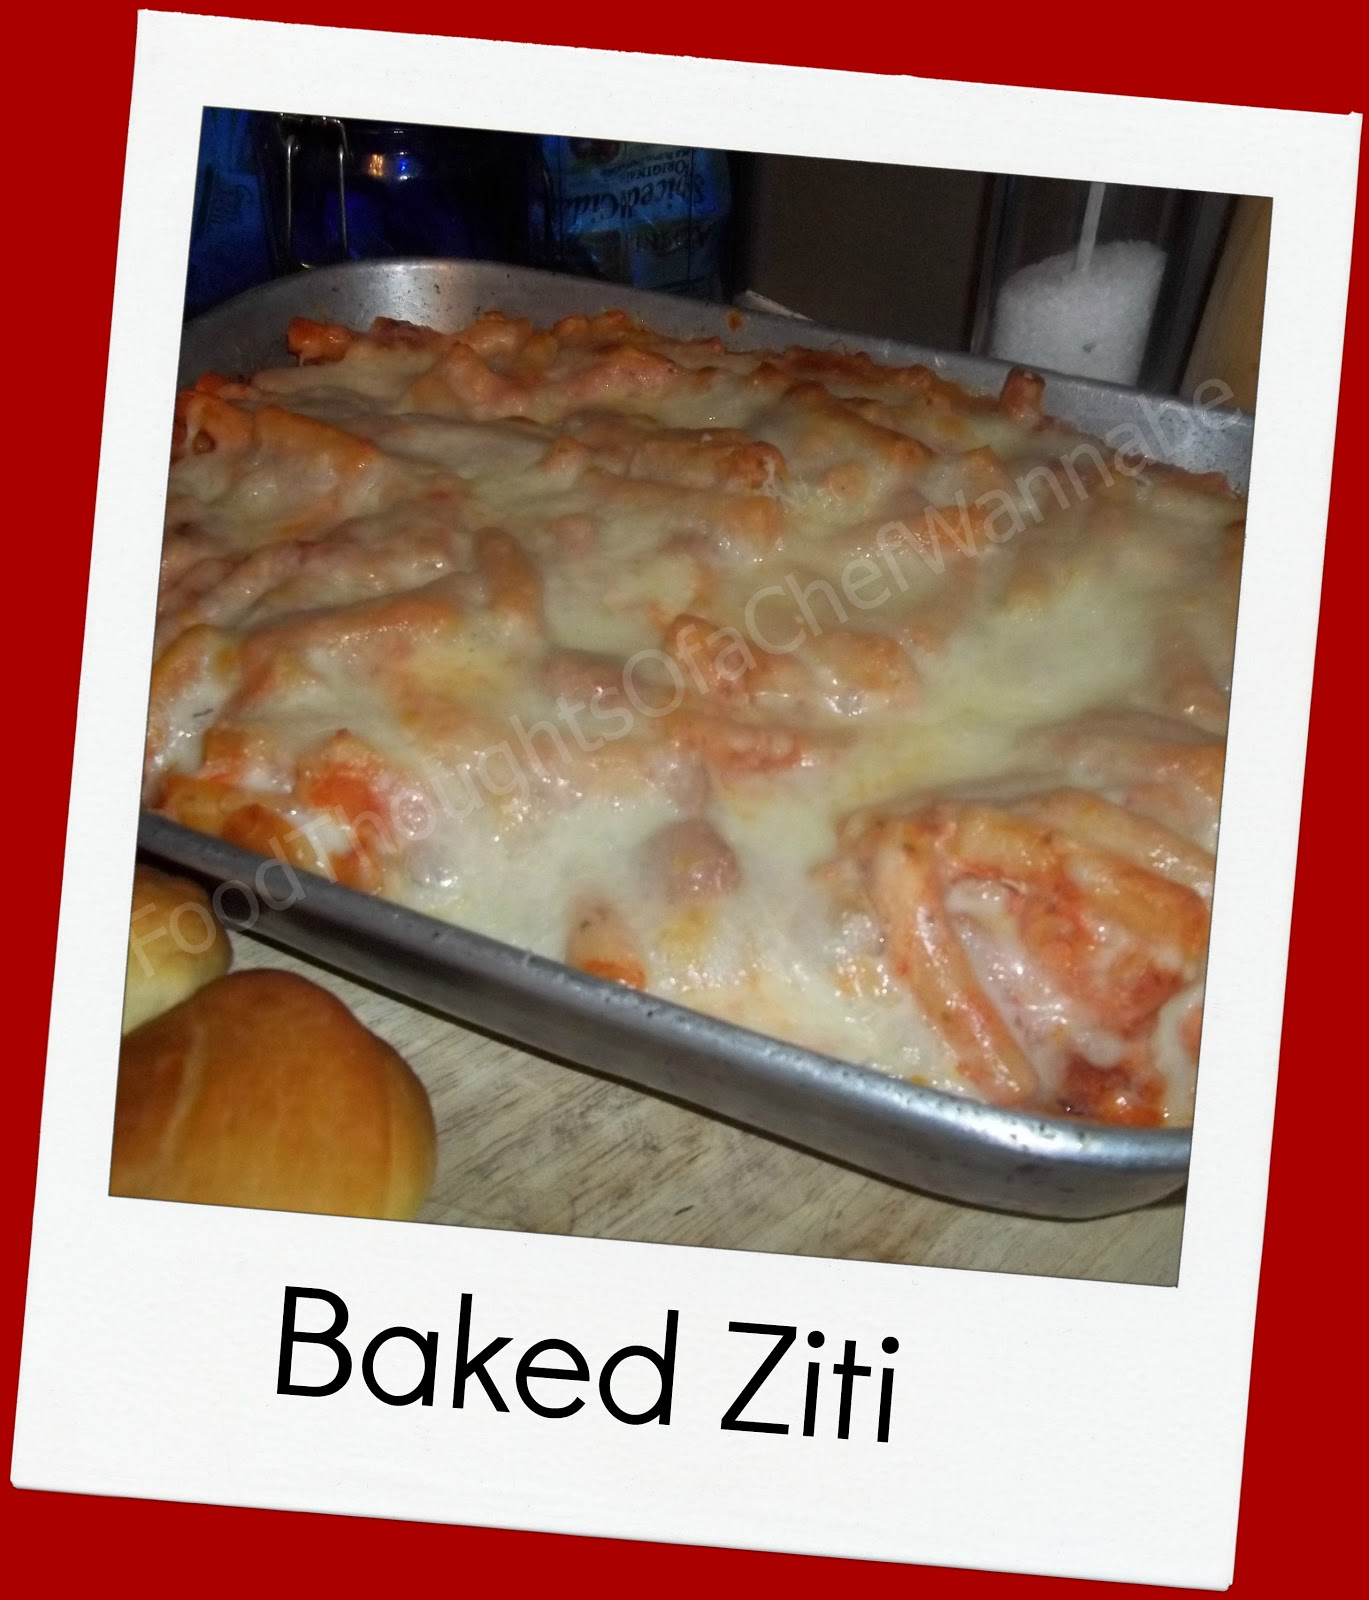 ... everyone knows what baked ziti is. Things that make you go, hmmmmm